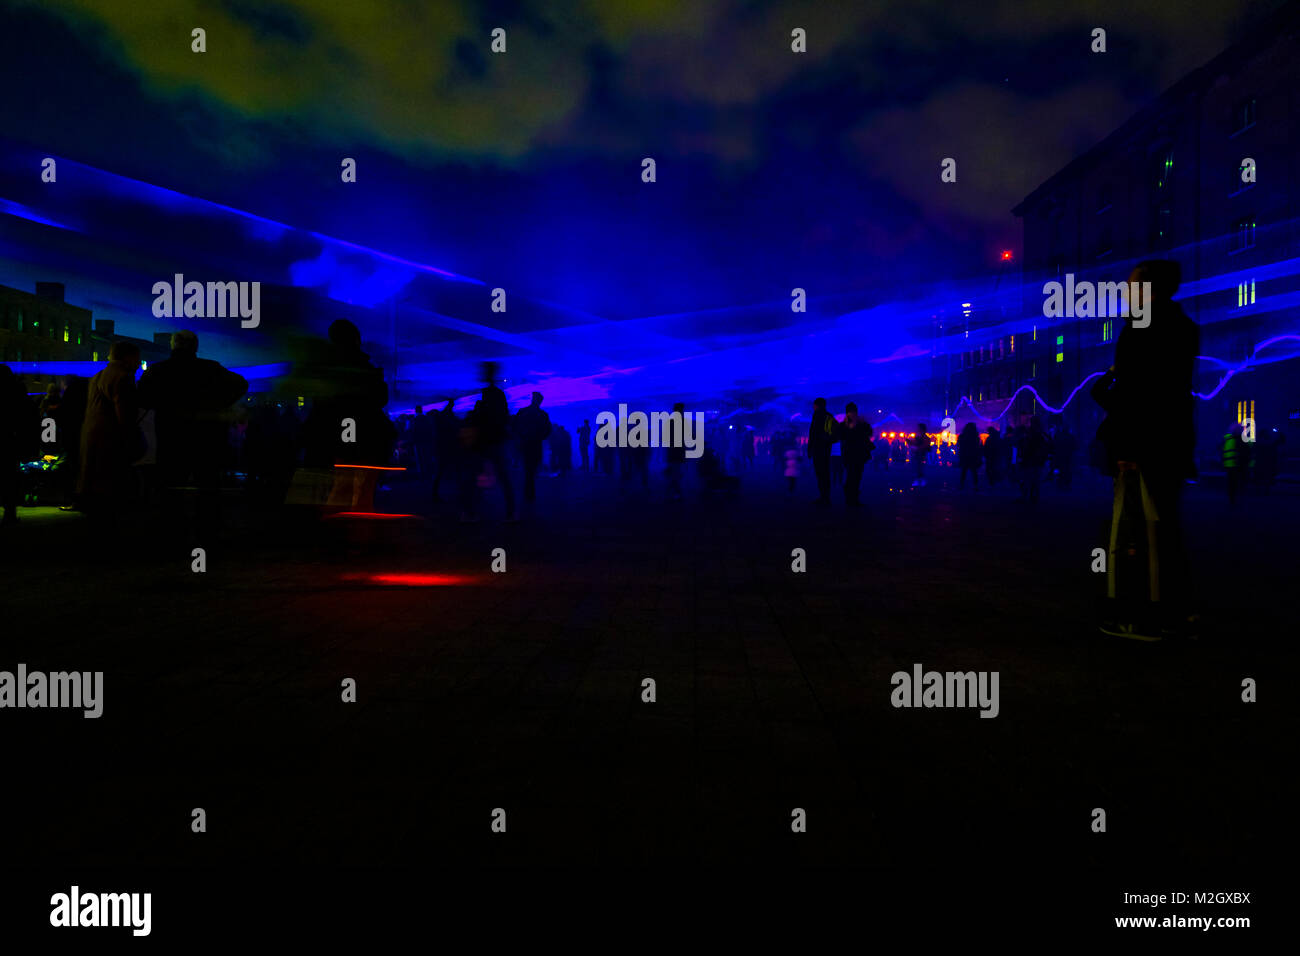 Crowds enjoy Daan Roosegaarde's Waterlicht - an installation within the Kings Cross Area of Lumiere London 2018 - Stock Image